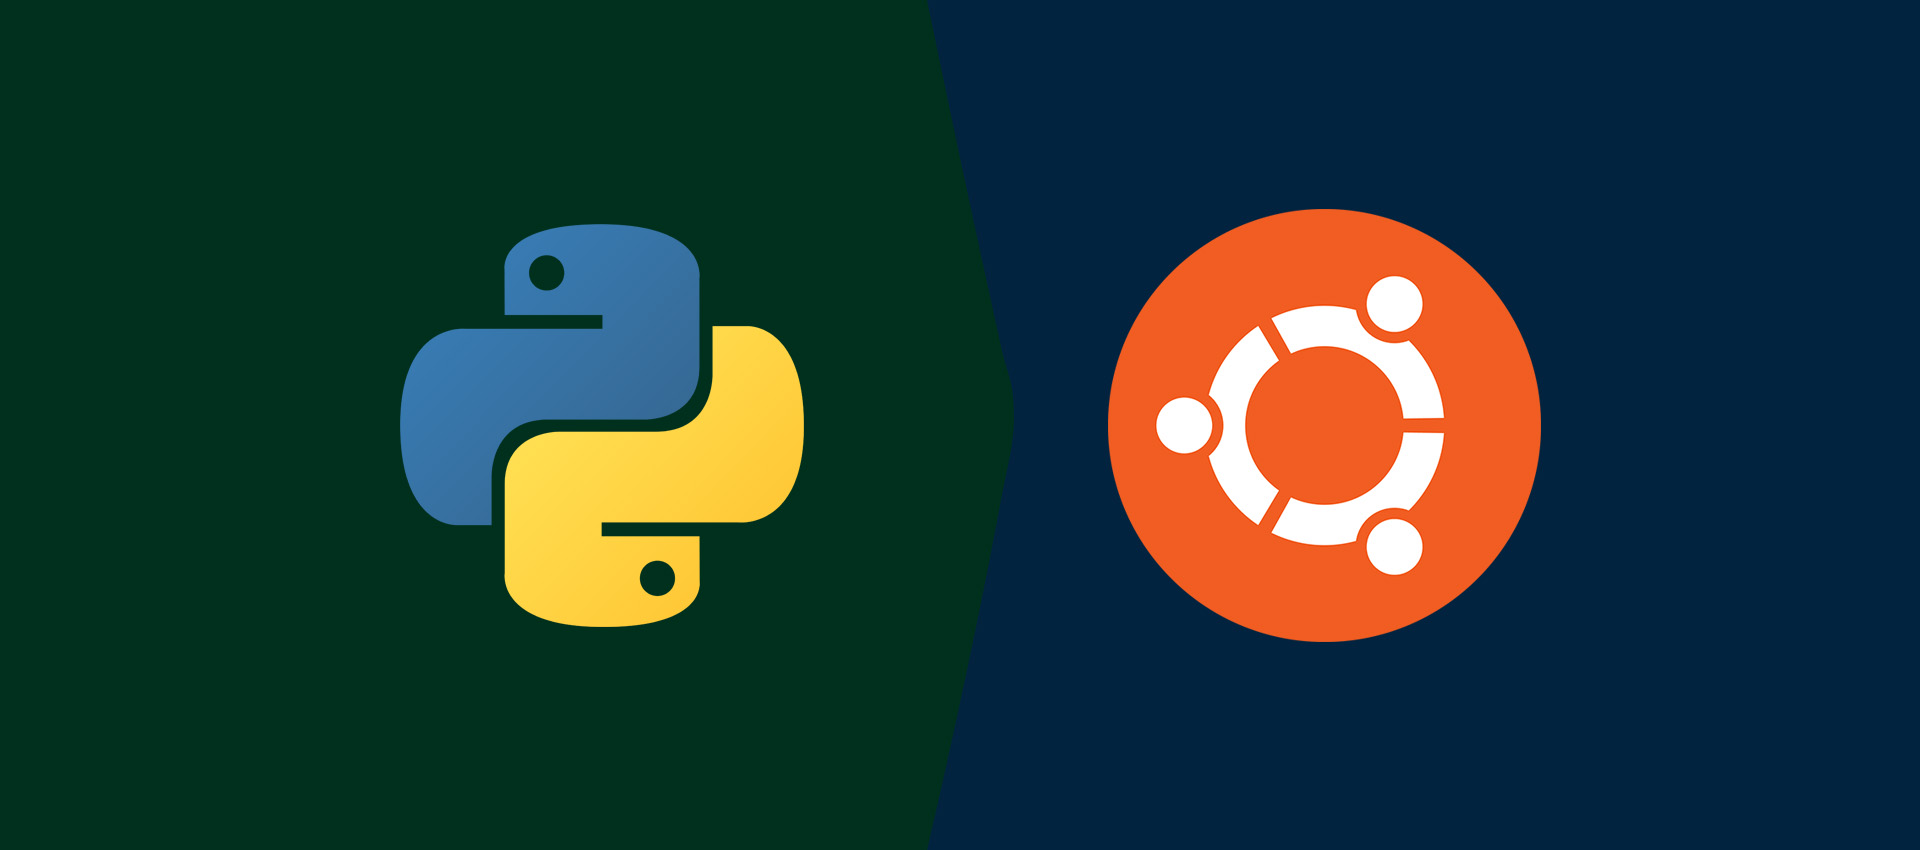 How To Install Python 3.8 On Ubuntu 18.04 LTS